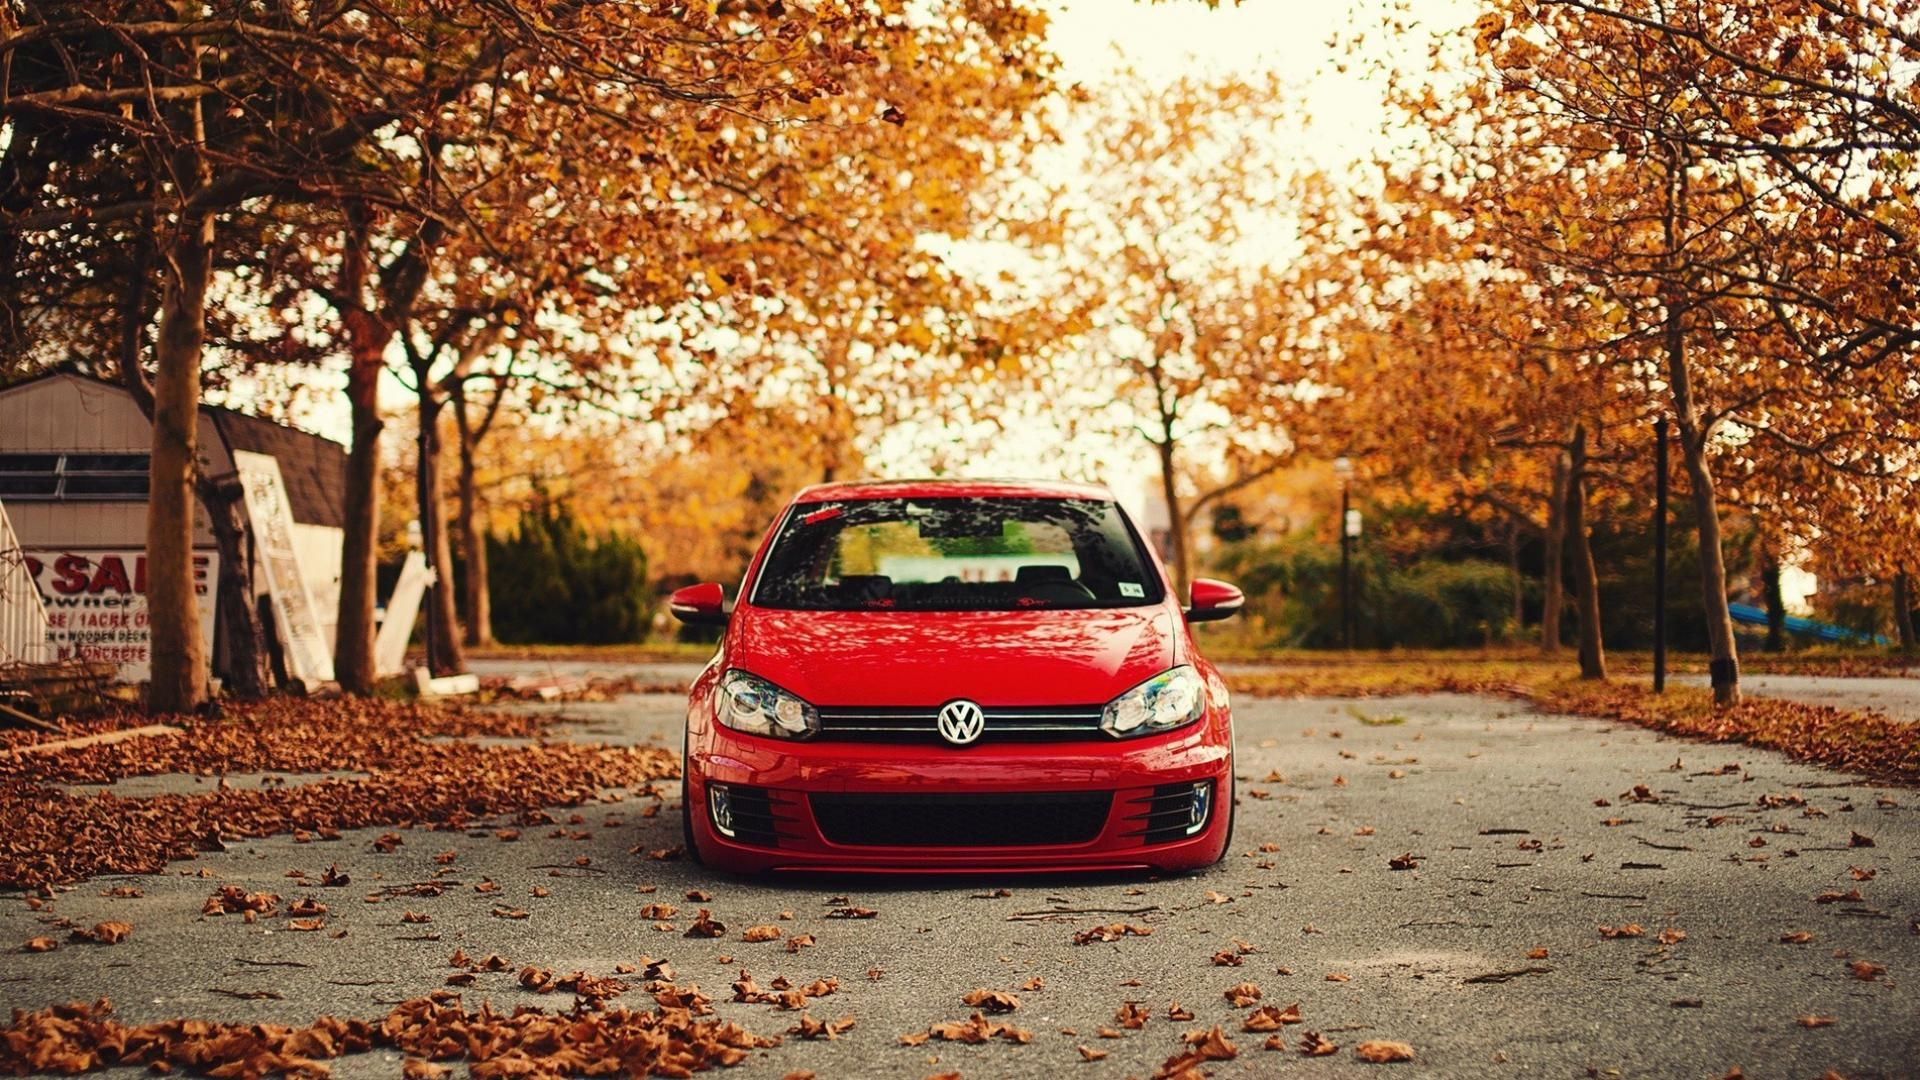 Nature trees cars leaves volkswagen golf r wallpaper 41233 1920x1080